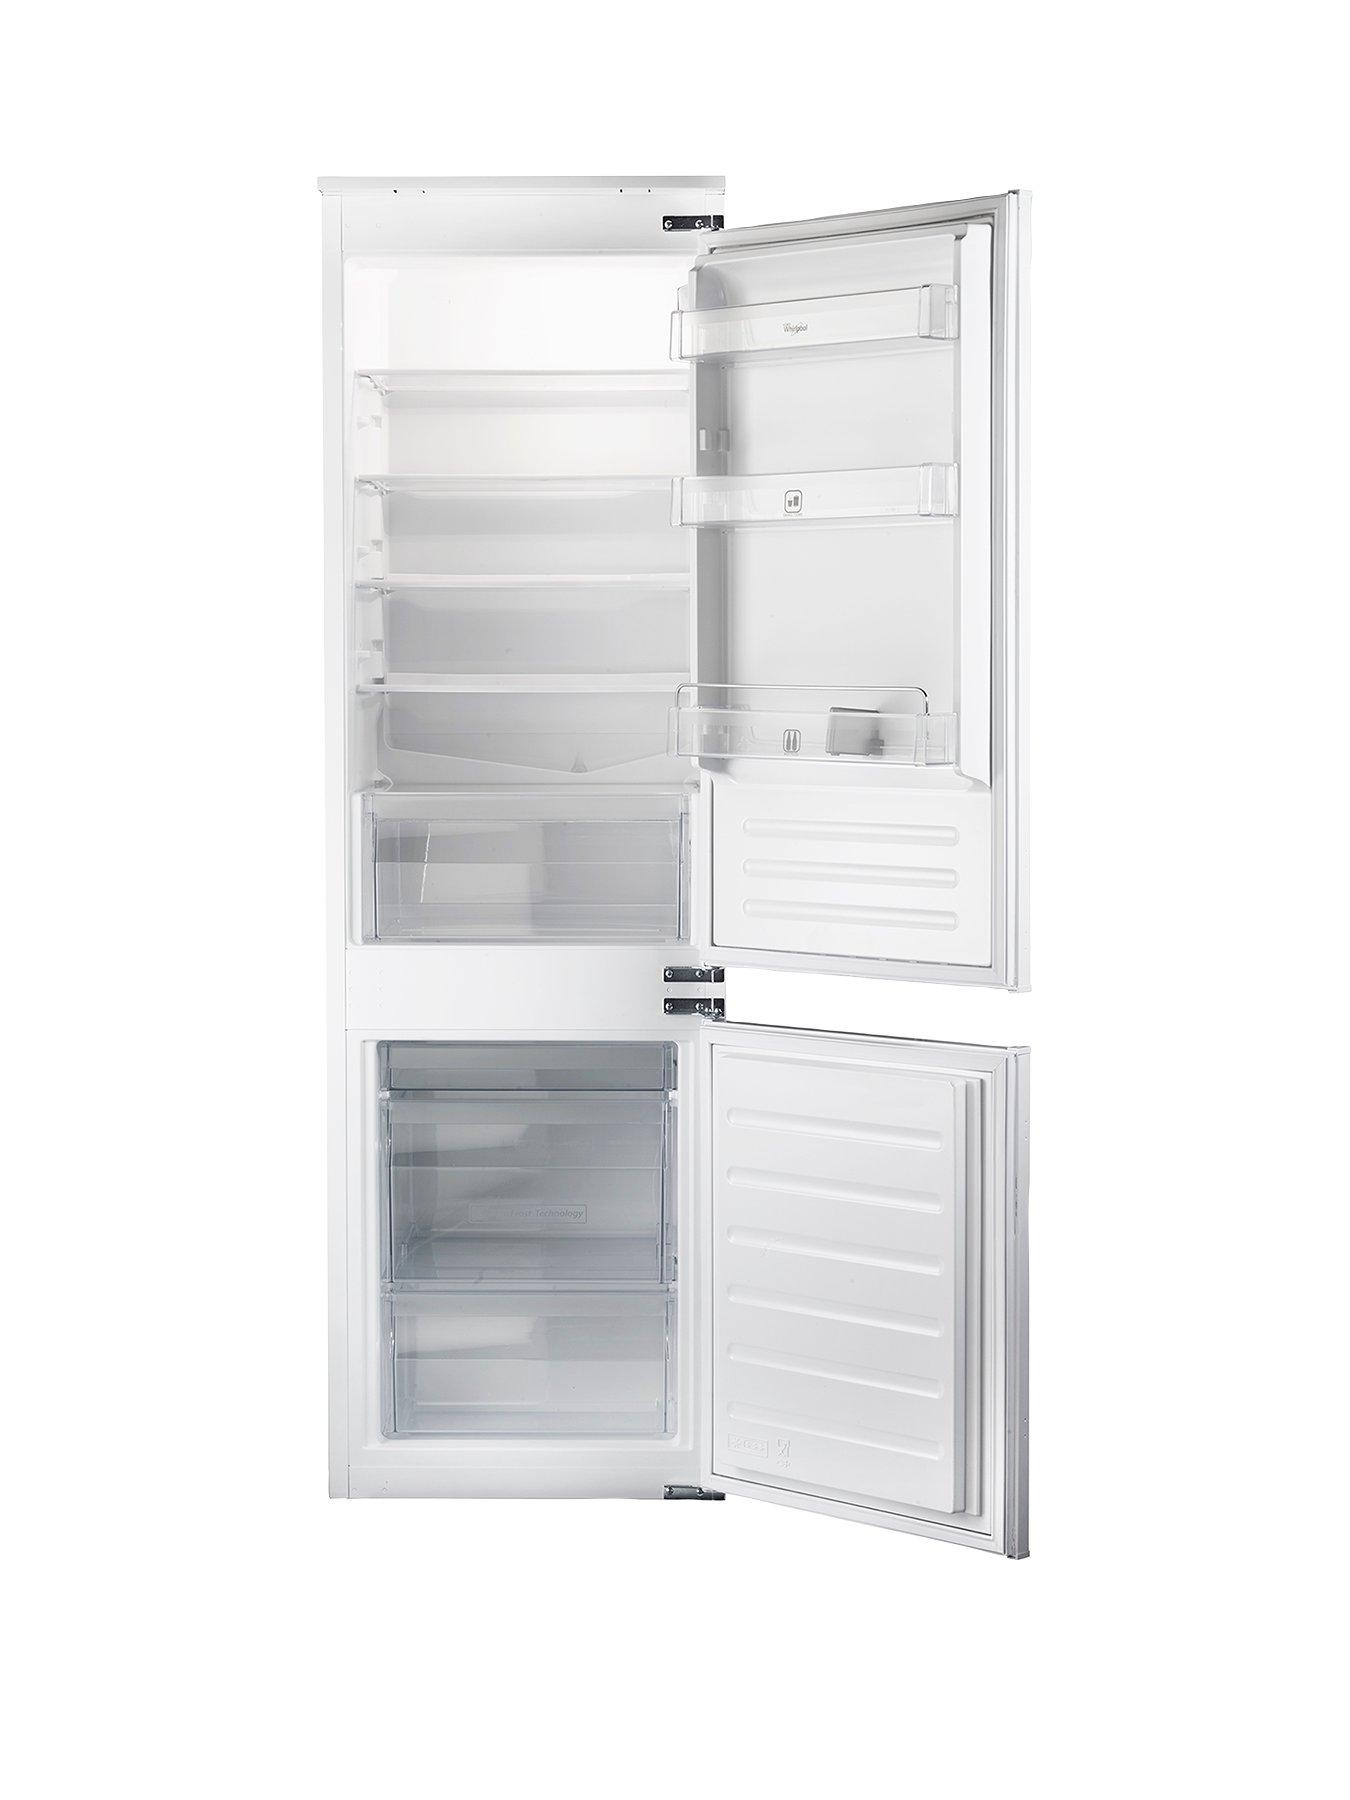 whirlpool art6550asf builtin fridge freezer with optional white